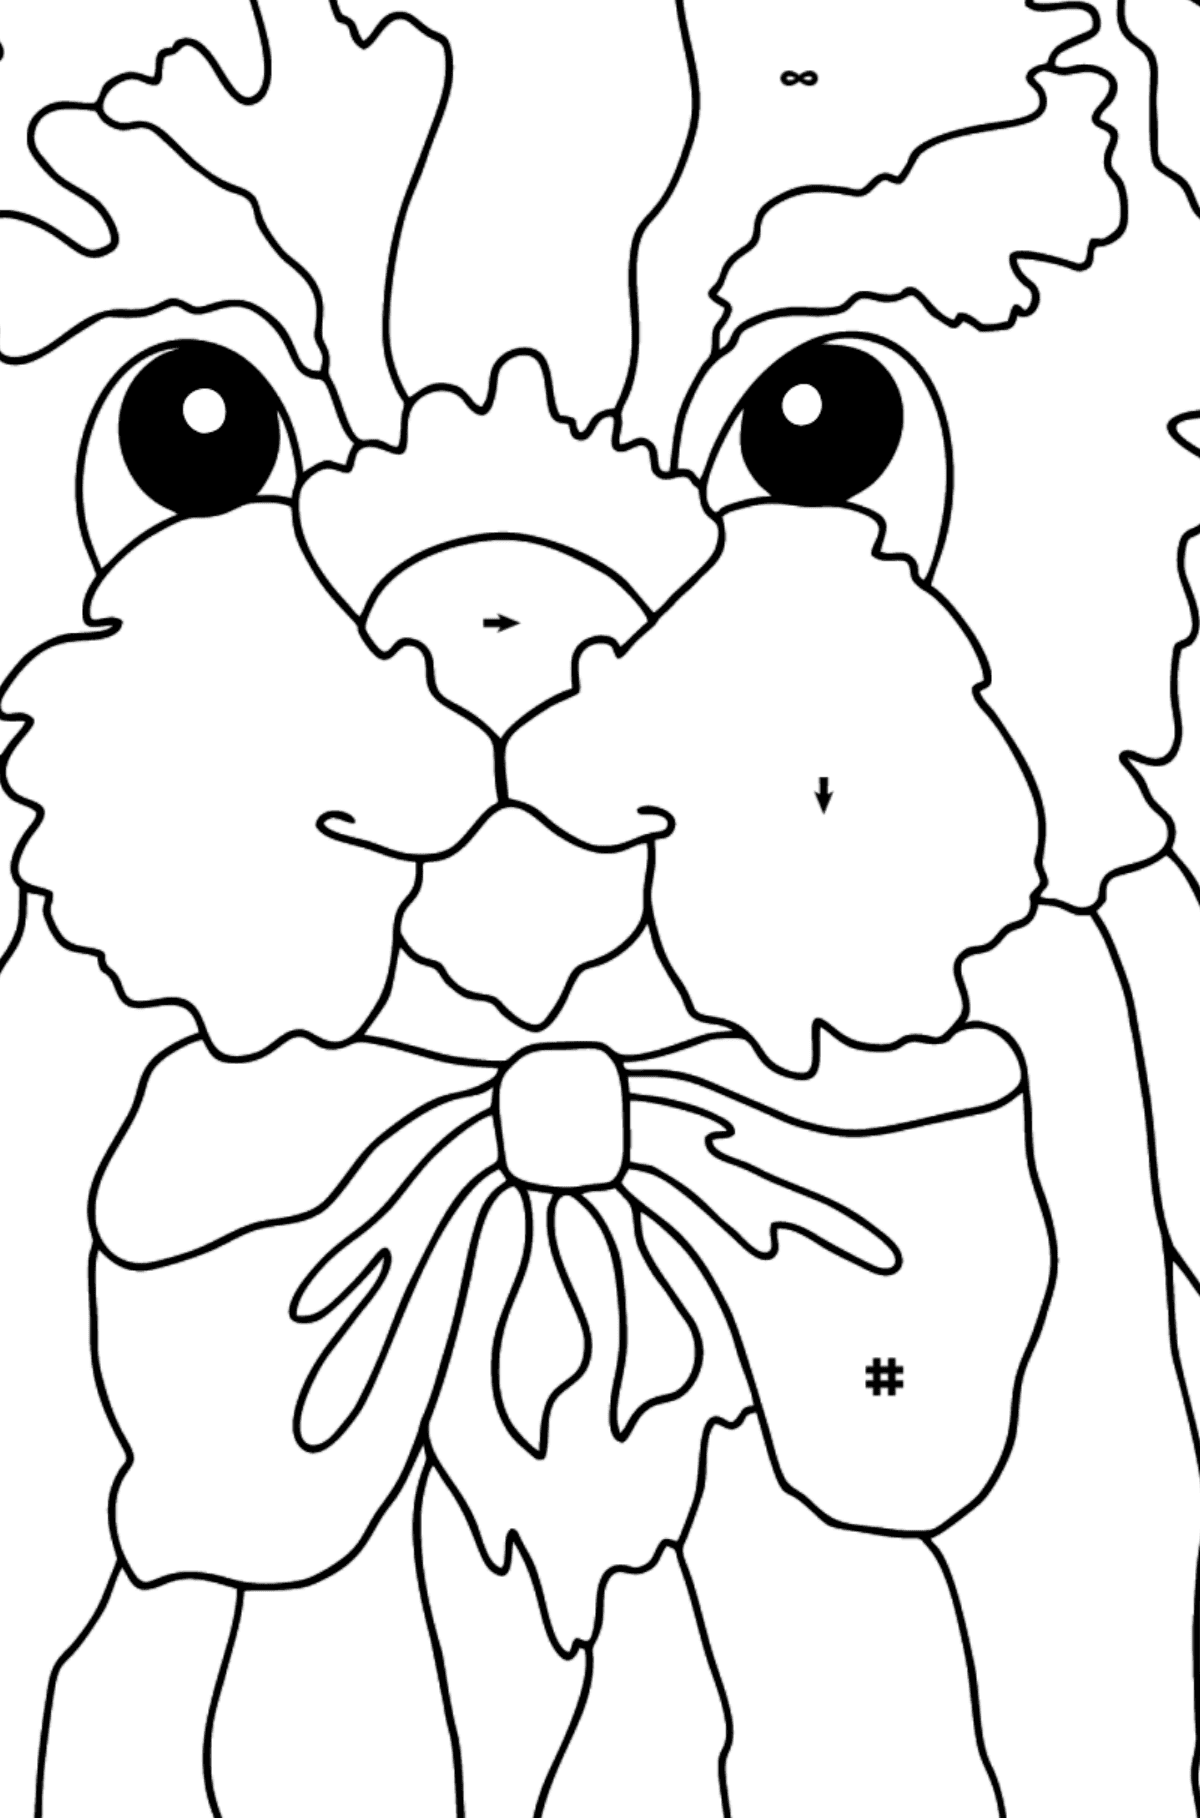 Coloring Page - A Young Fluffy Dog - Coloring by Symbols and Geometric Shapes for Kids